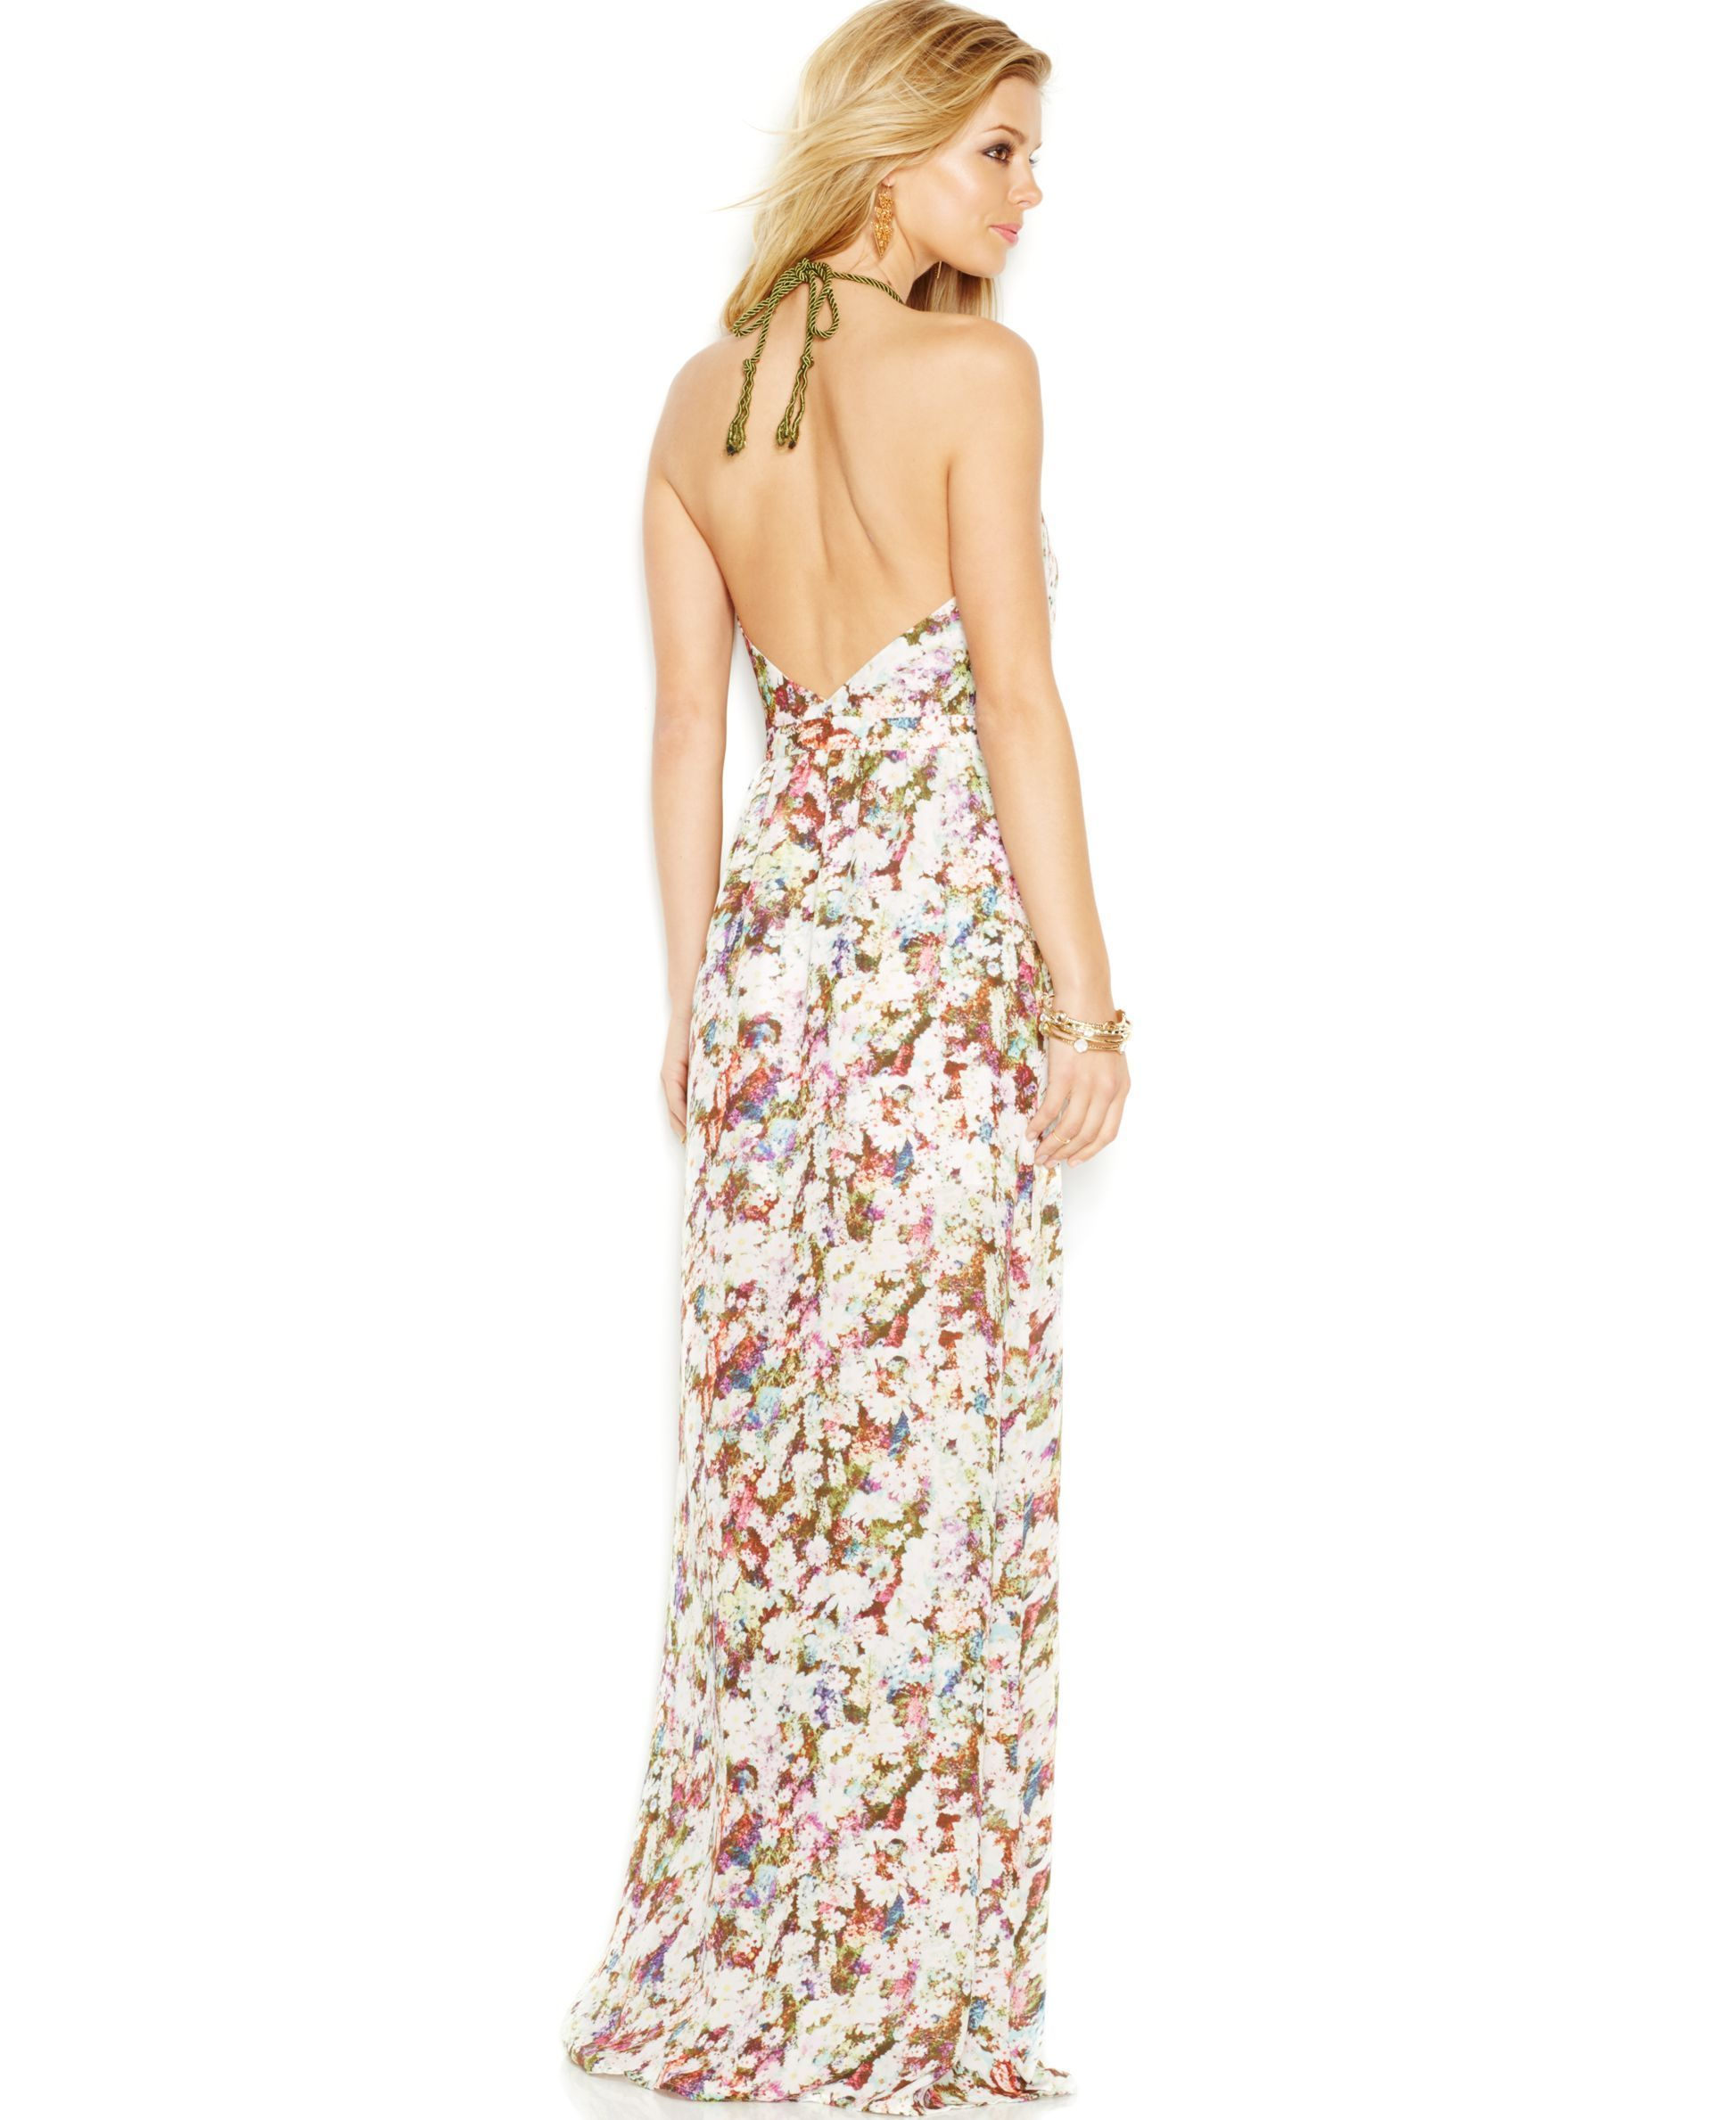 e3b0b38dabff GUESS Floral Halter Maxi Dress - Dresses - Women - Macy's | Casual ...